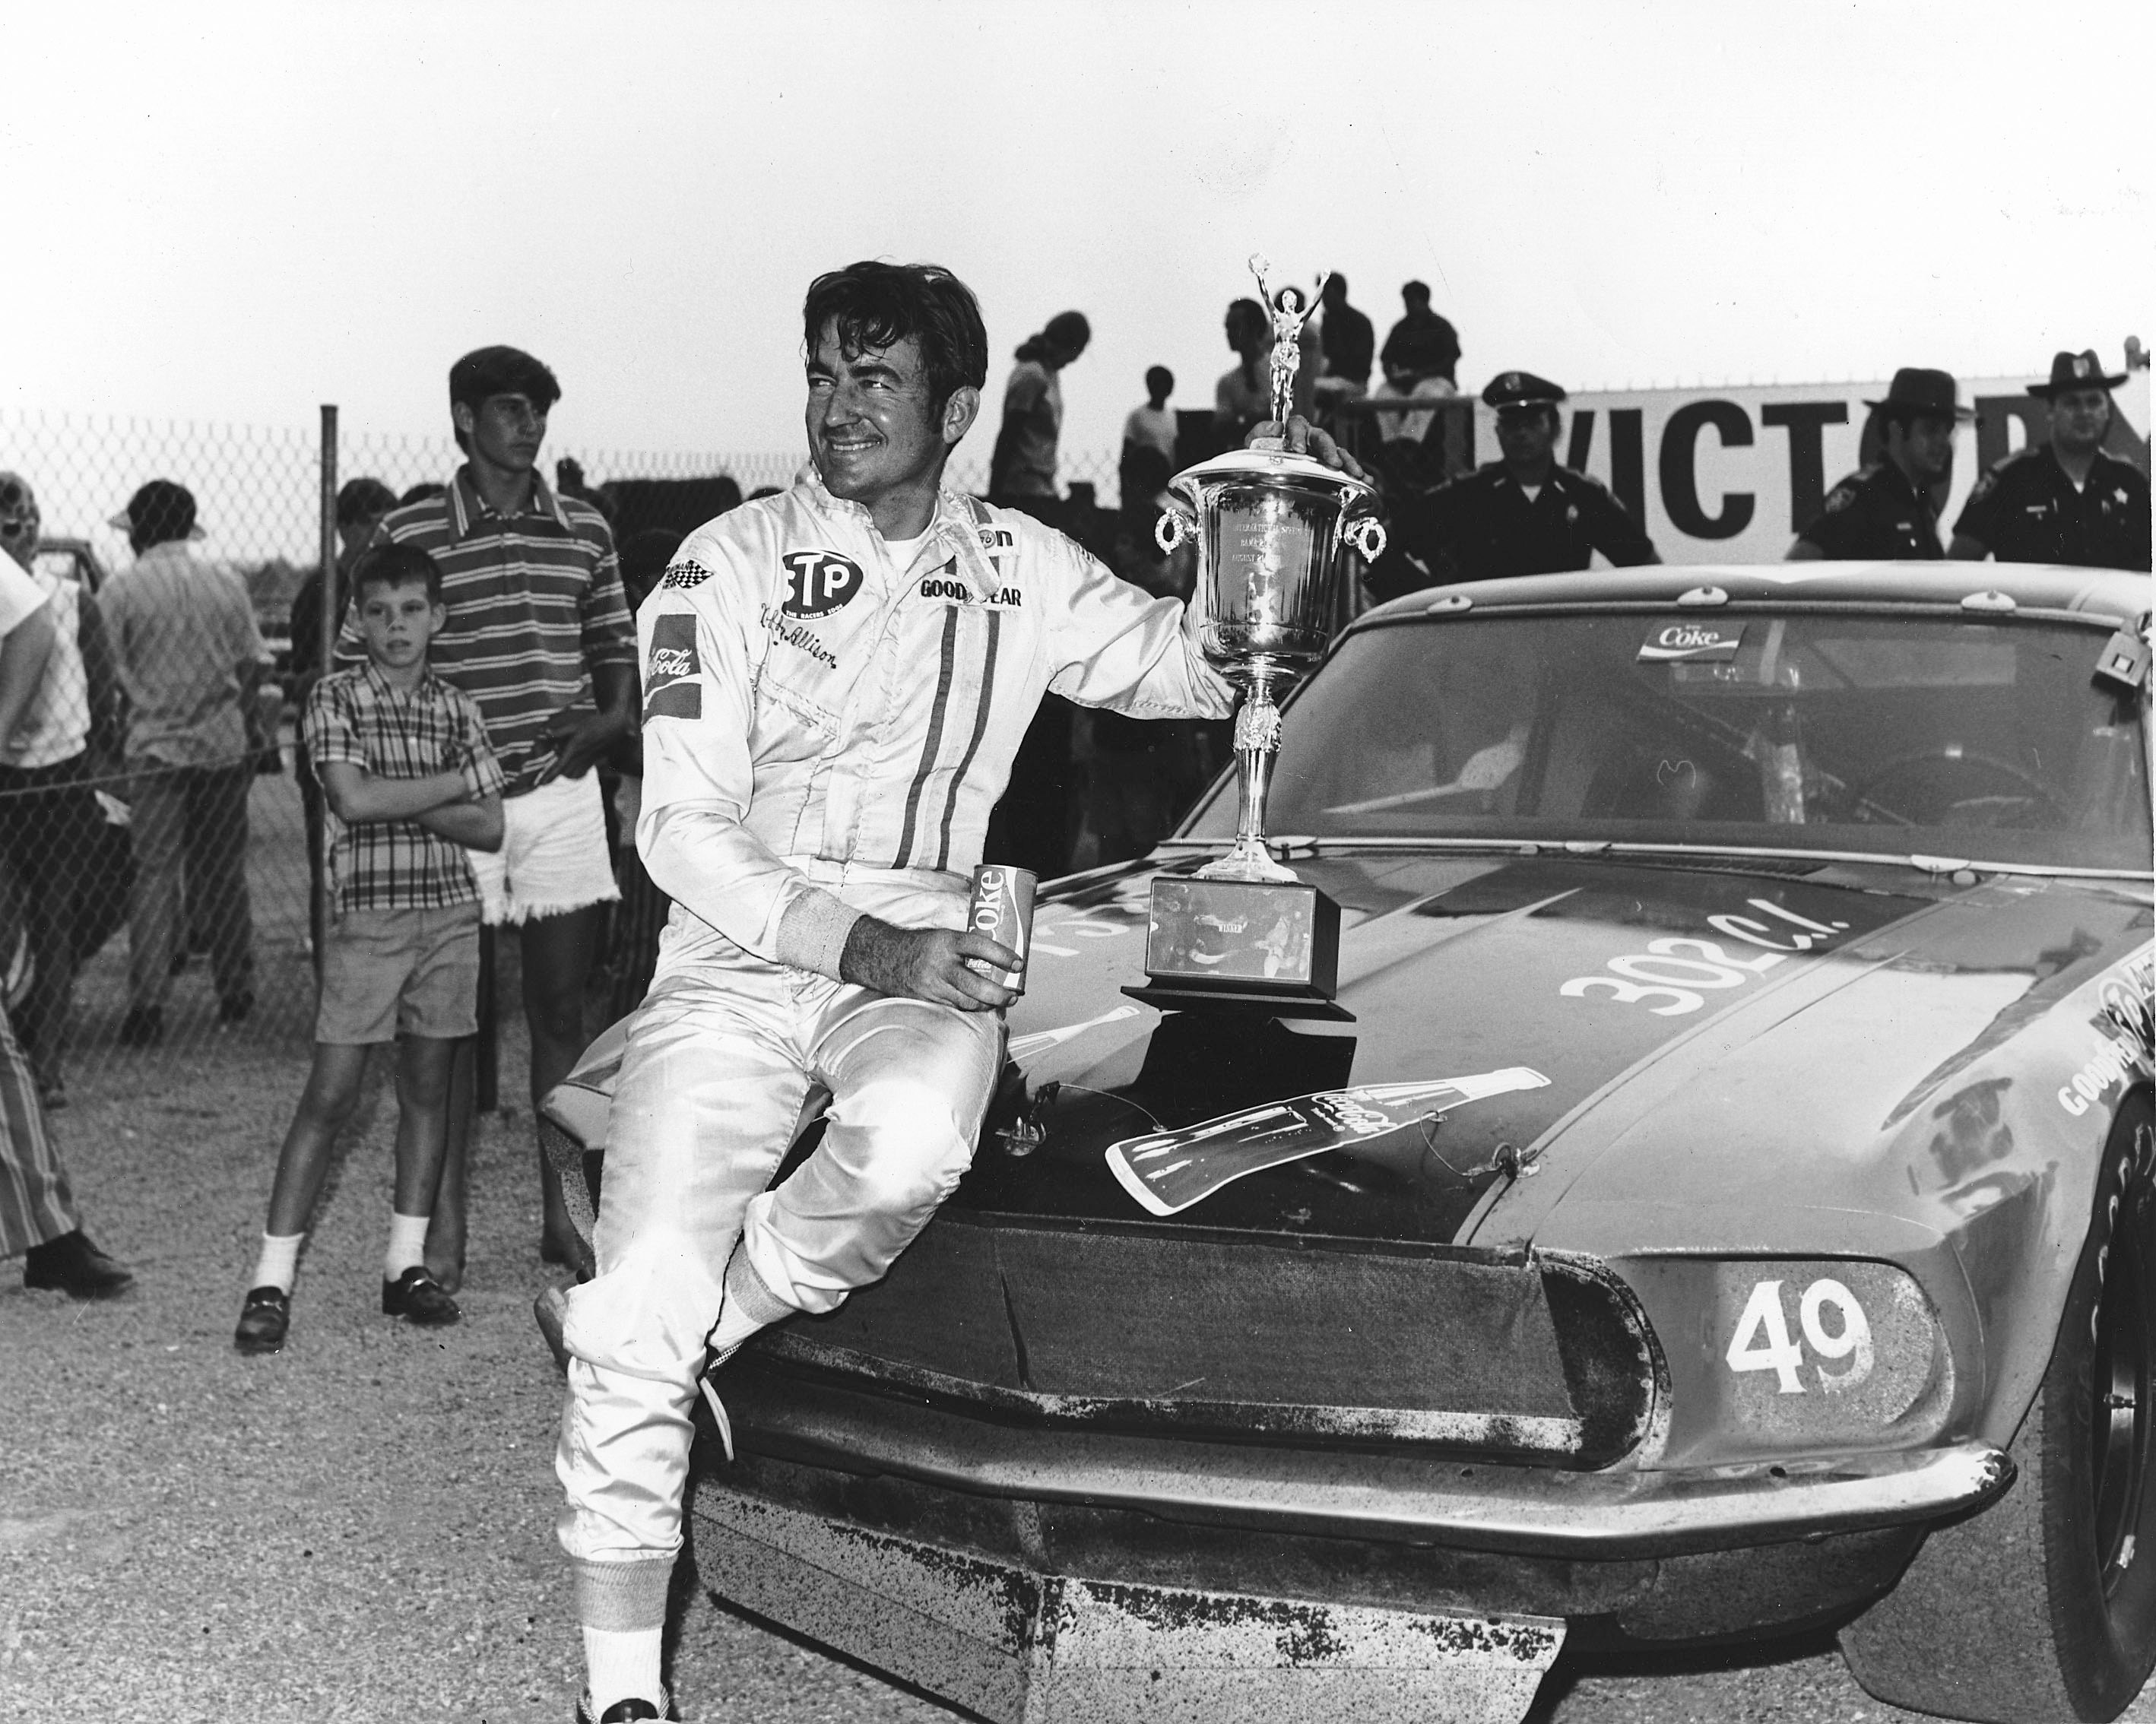 TALLADEGA, AL - AUGUST 21, 1971: Bobby Allison won the 'Bama 200 NASCAR Grand American race with a '69 Mustang. (Photo by ISC Archives via Getty Images)